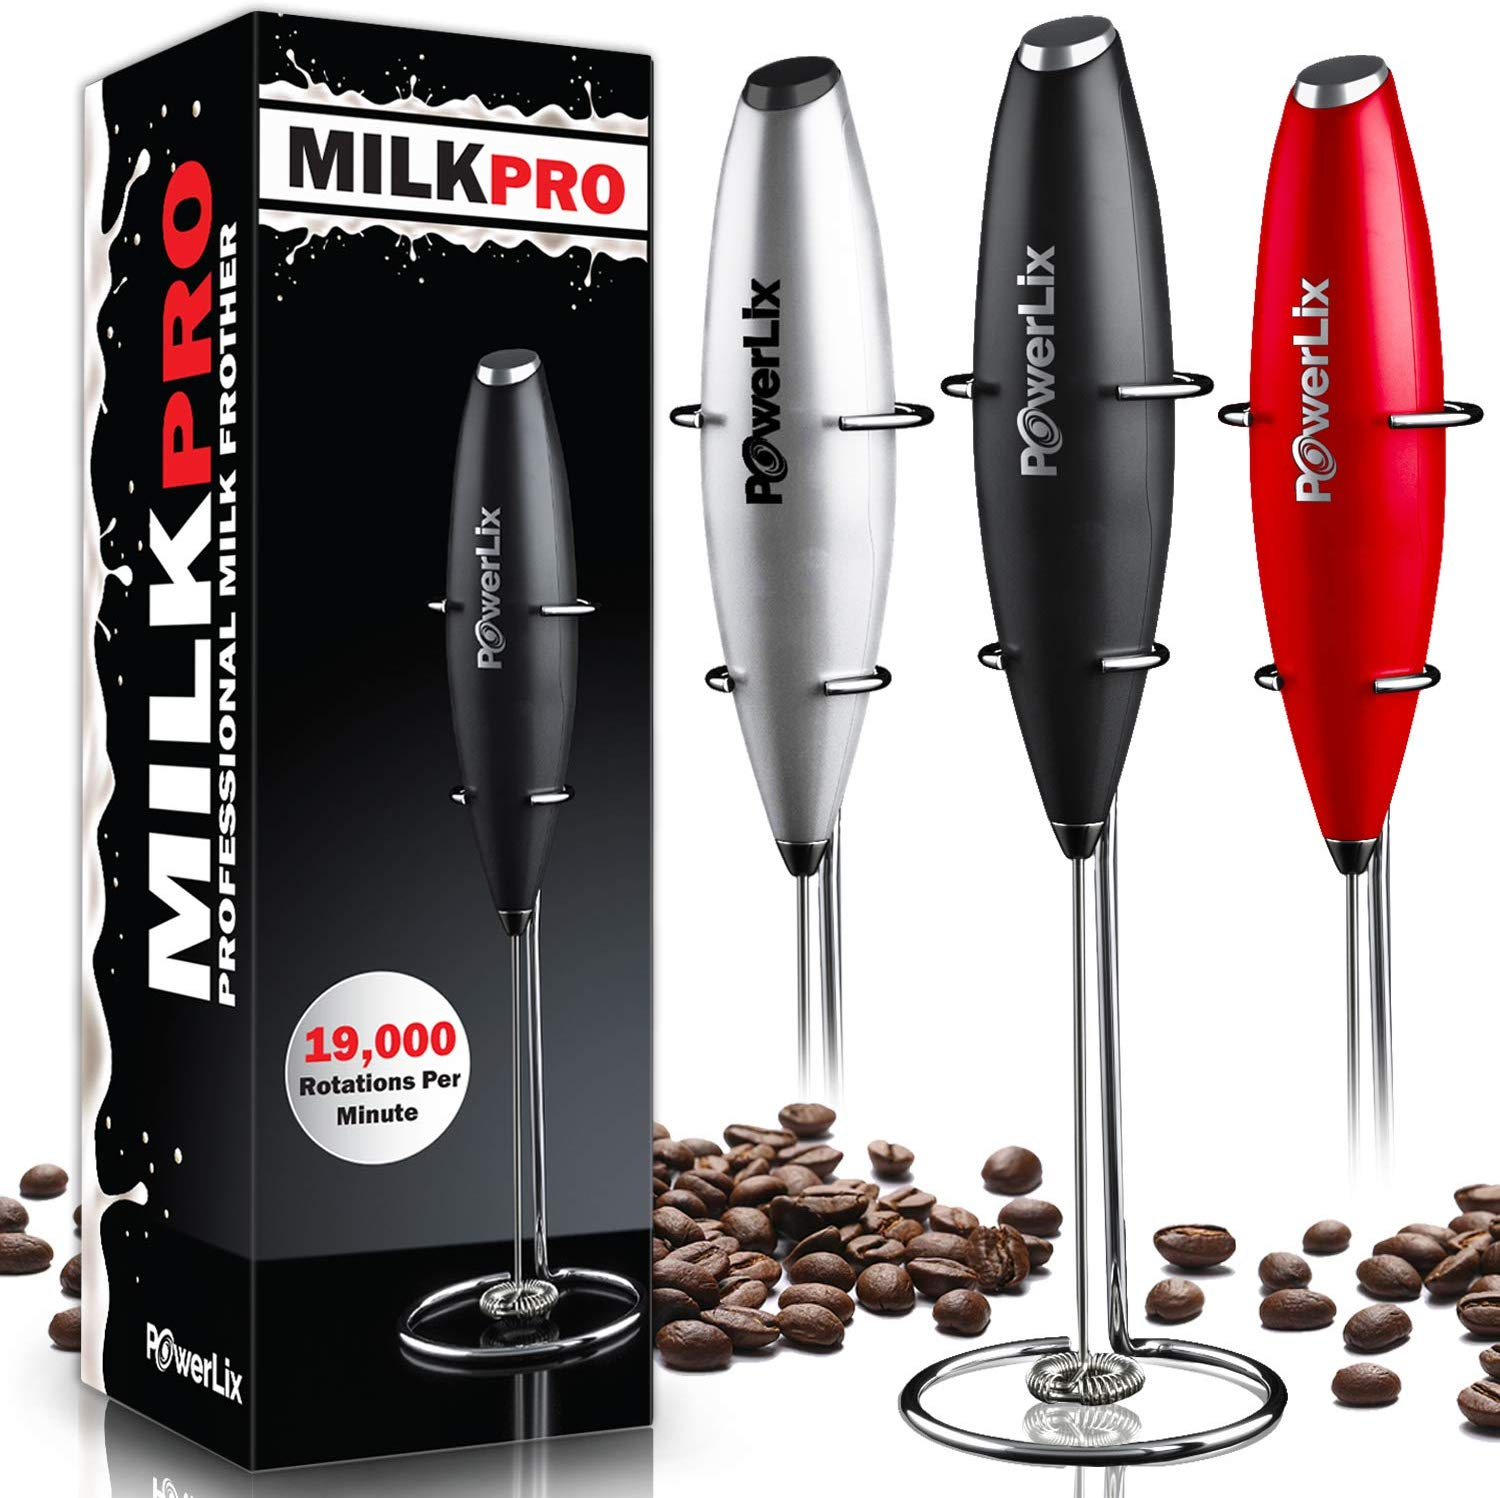 Powerlix handheld battery operated milk frother